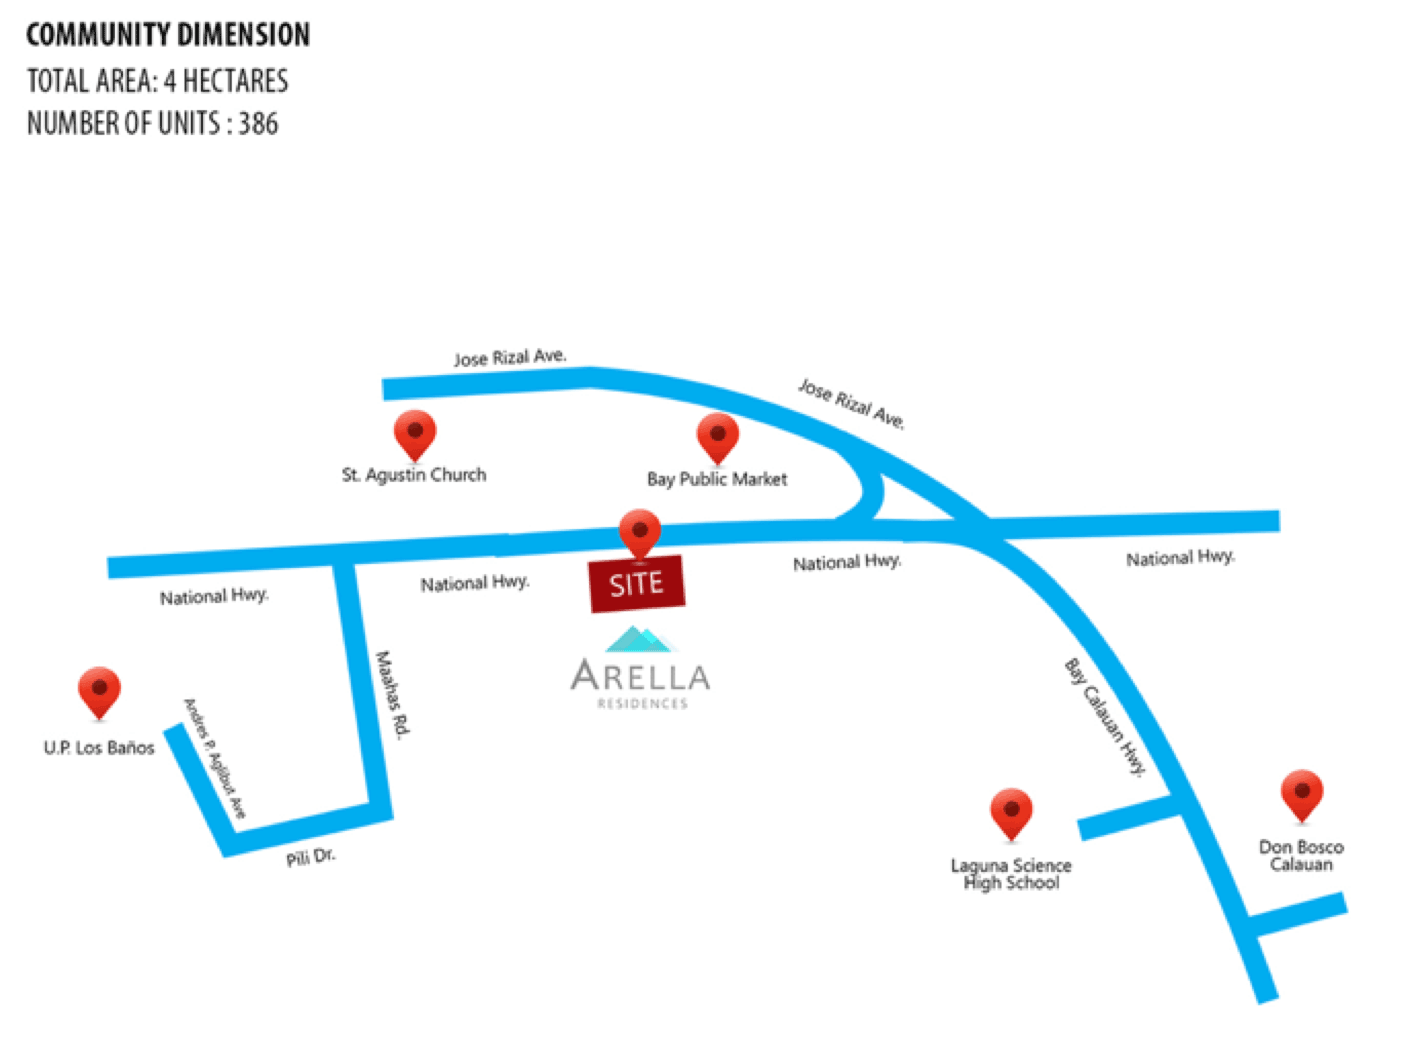 Arella Residences - Location & Vicinity